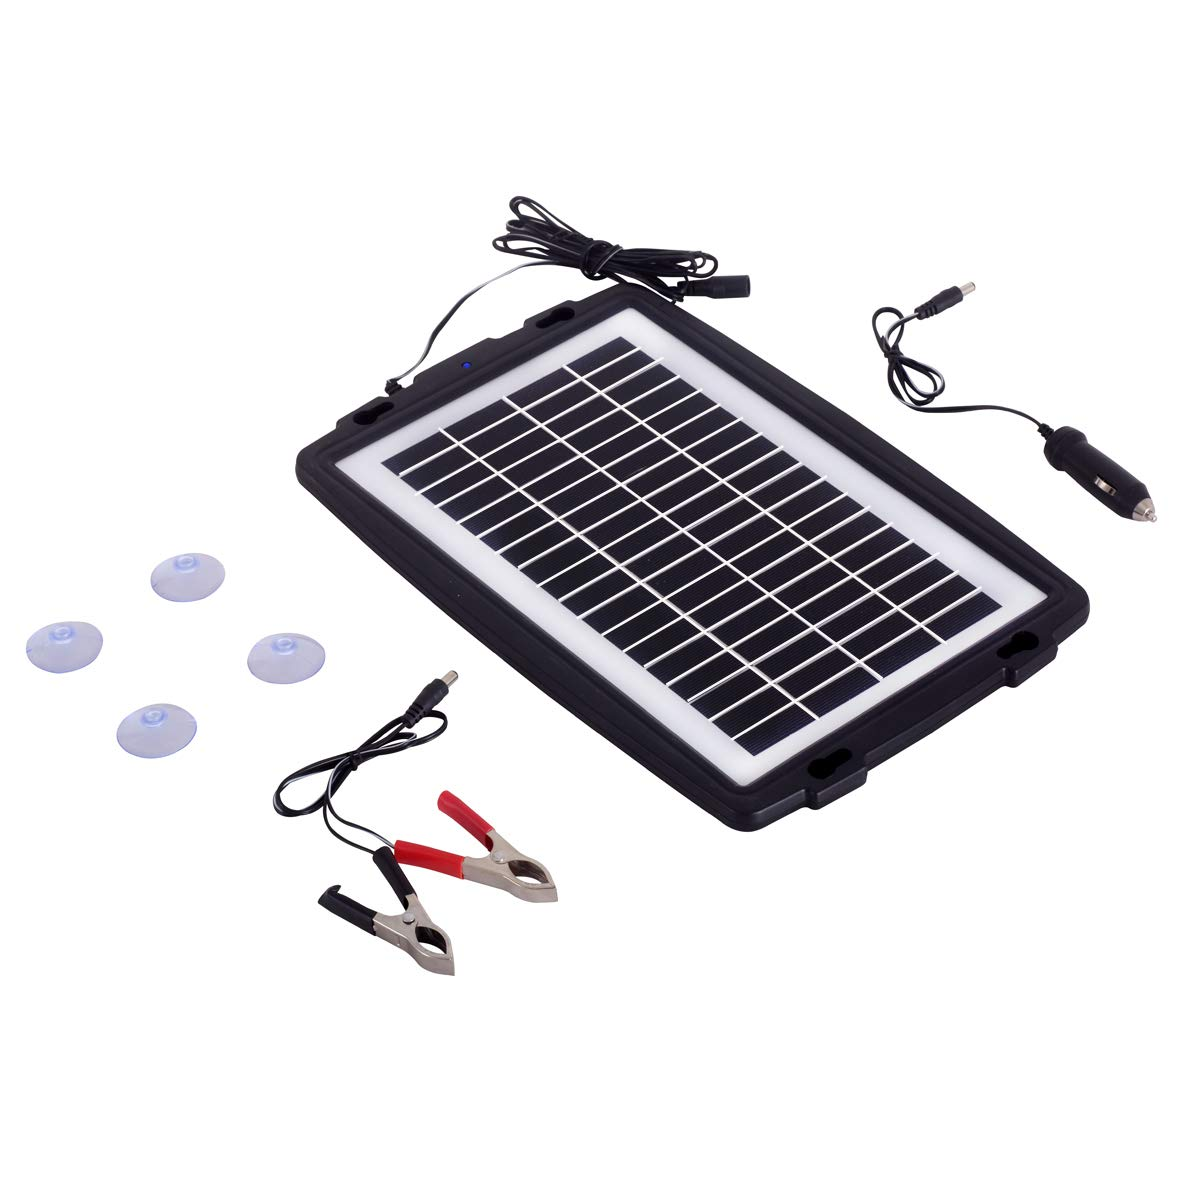 Betop-camp 10W 12V Solar Battery trickle with Plug, Battery Clip Module and Suction Cups Portable and Waterproof for Automotive, Motorcycle, Boat, RV, Powersports, Marine, Snowmobile, etc.